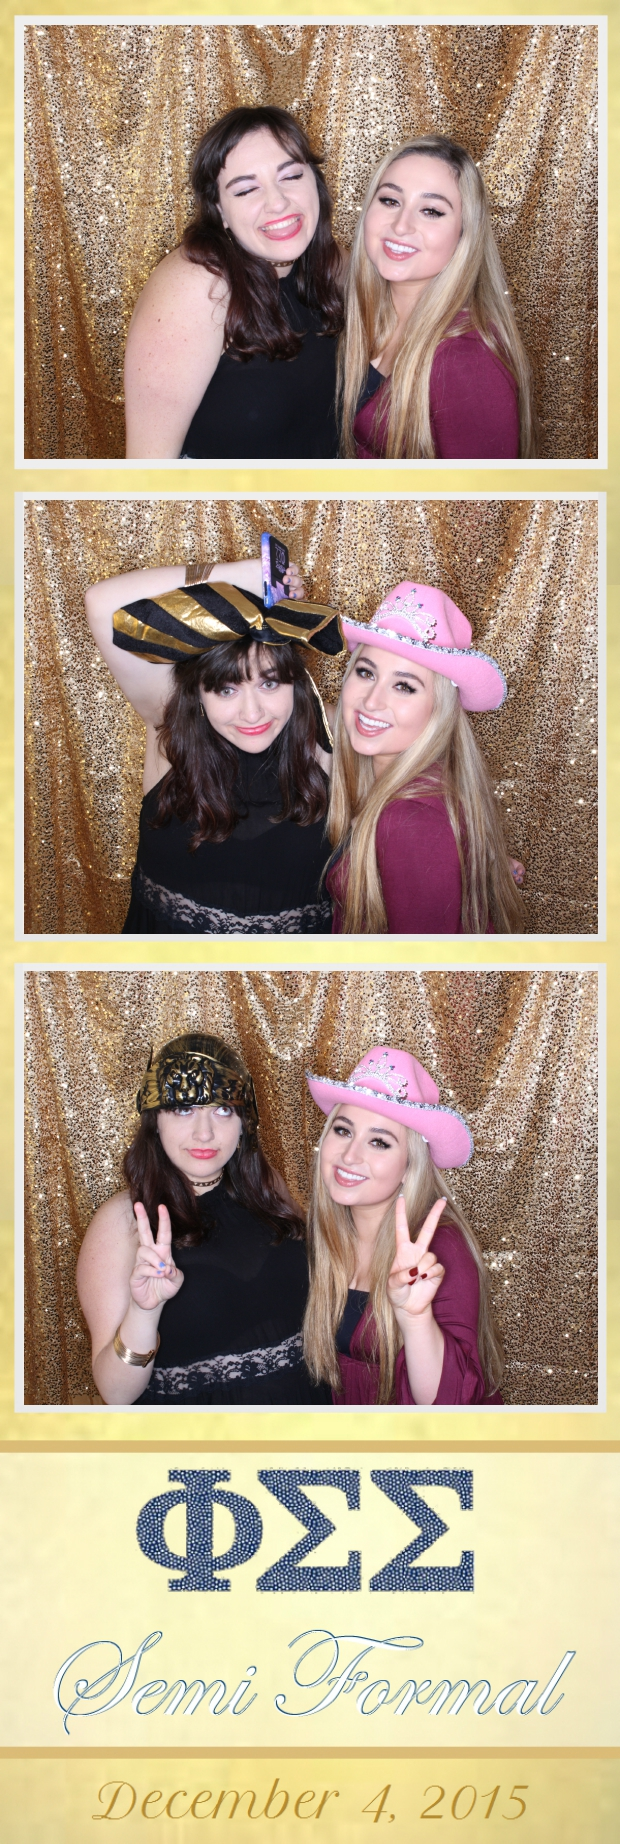 Guest House Events Photo Booth Phi Sigma Sigma Semi Formal (75).jpg